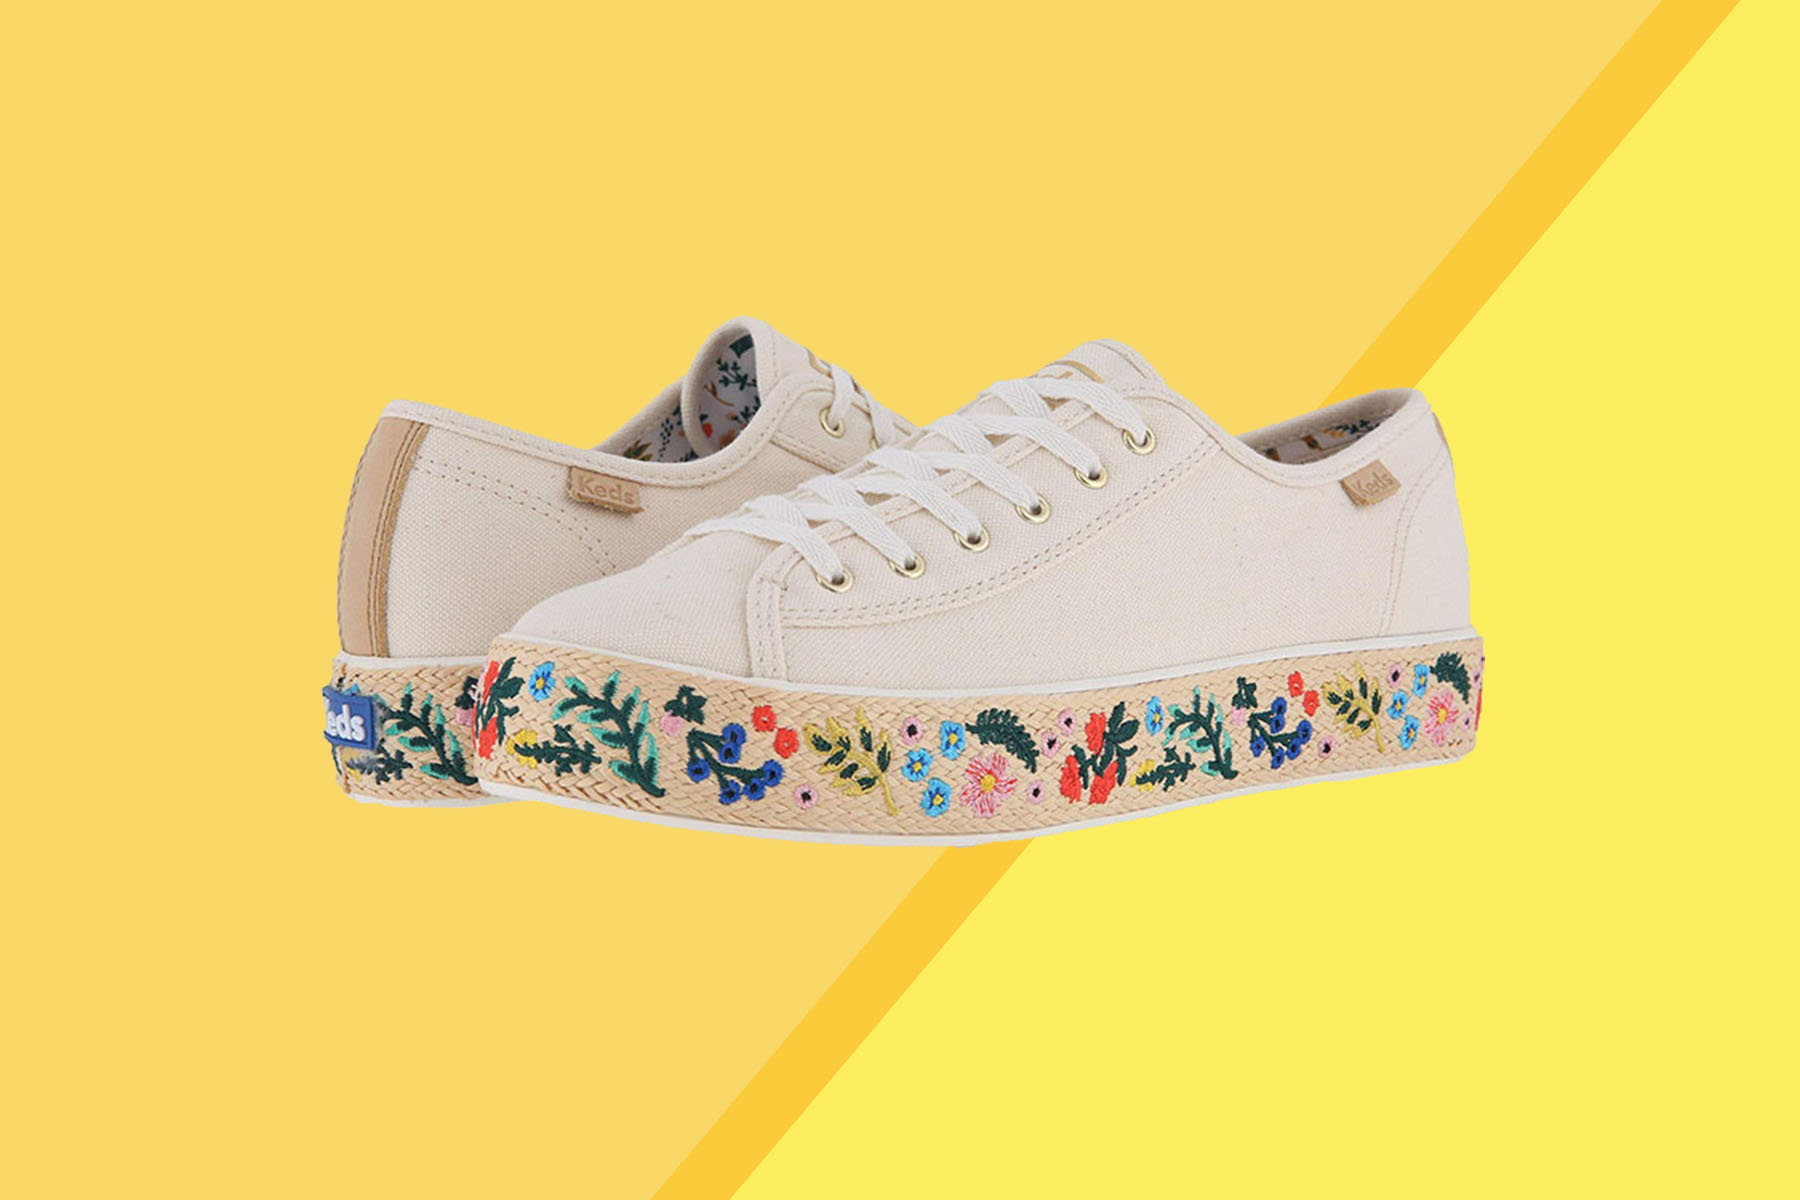 Zappos Floral Sneakers